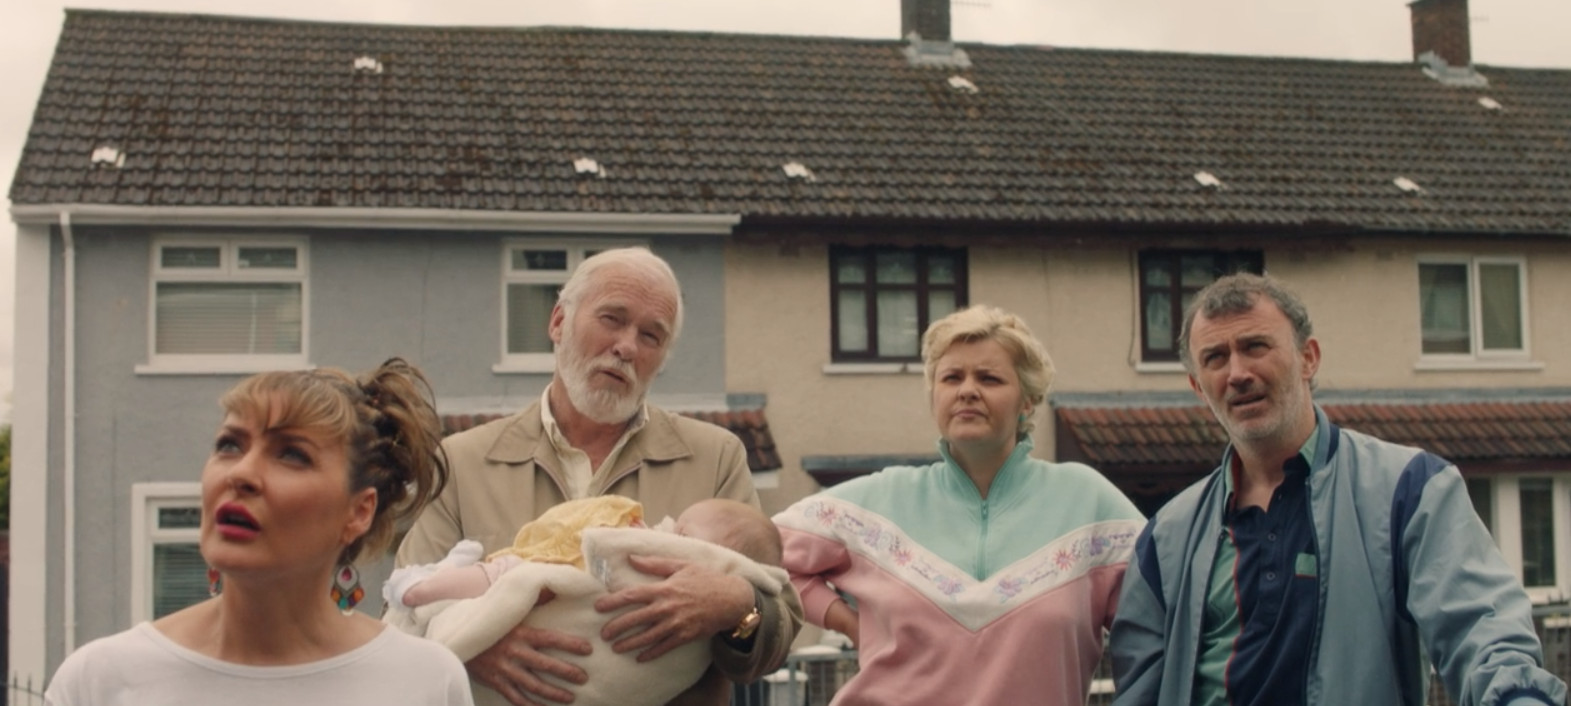 Kathy Kiera Clarke, Ian McElhinney, Tara Lynne O'Neill, and Tommy Tiernan in Derry Girls (2018)